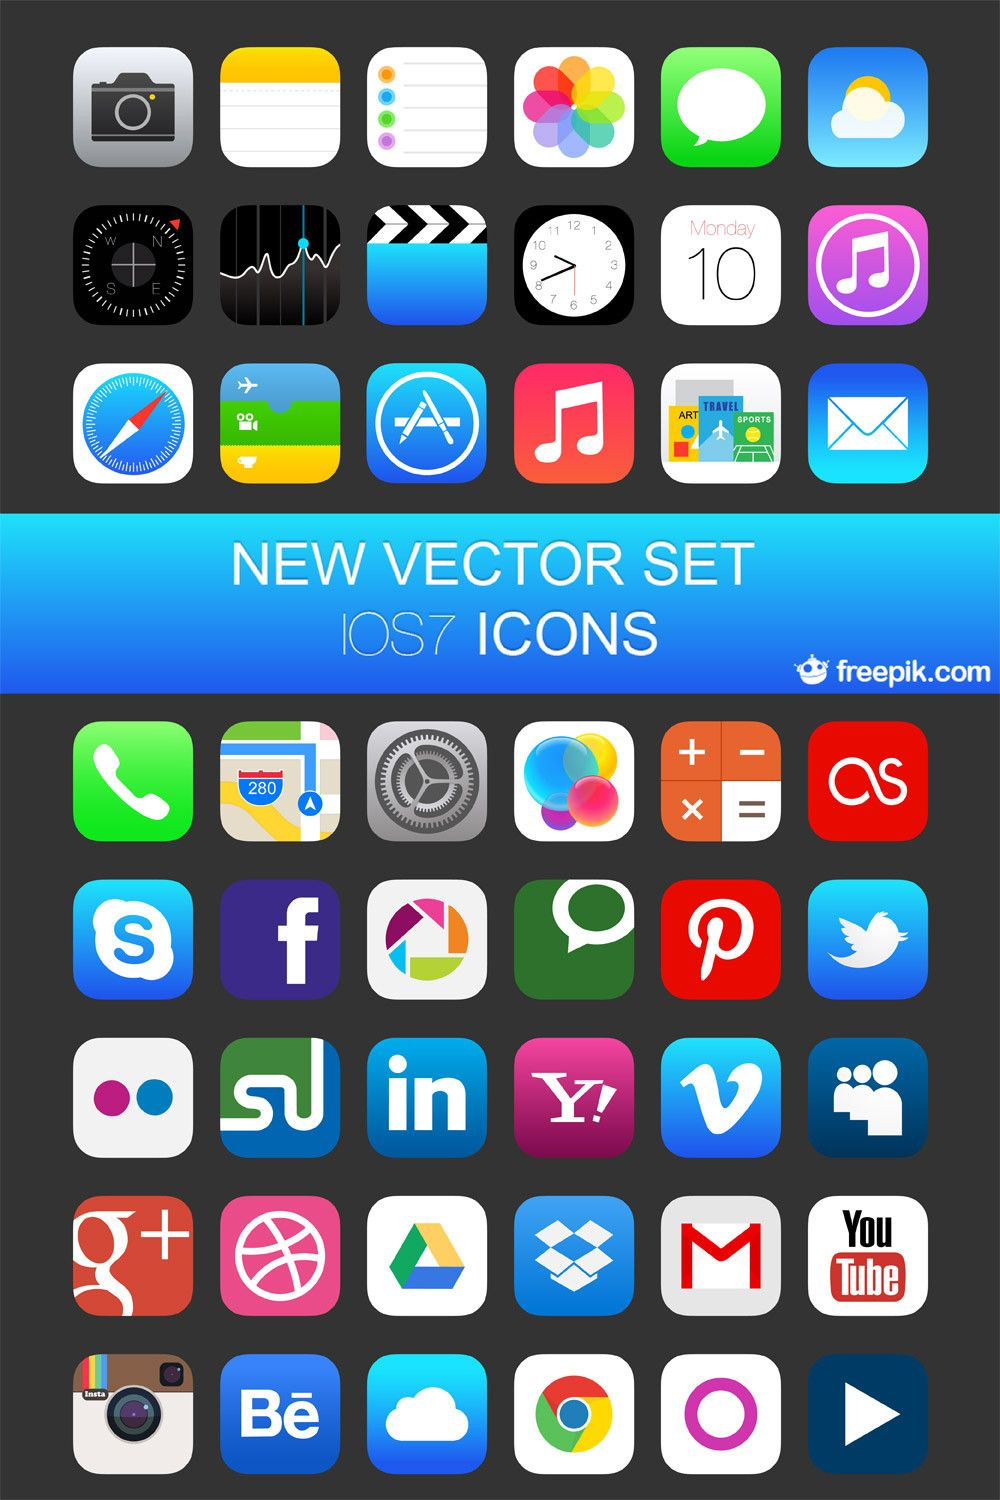 iOS 7 Vector Icons Icons Fribly Web design